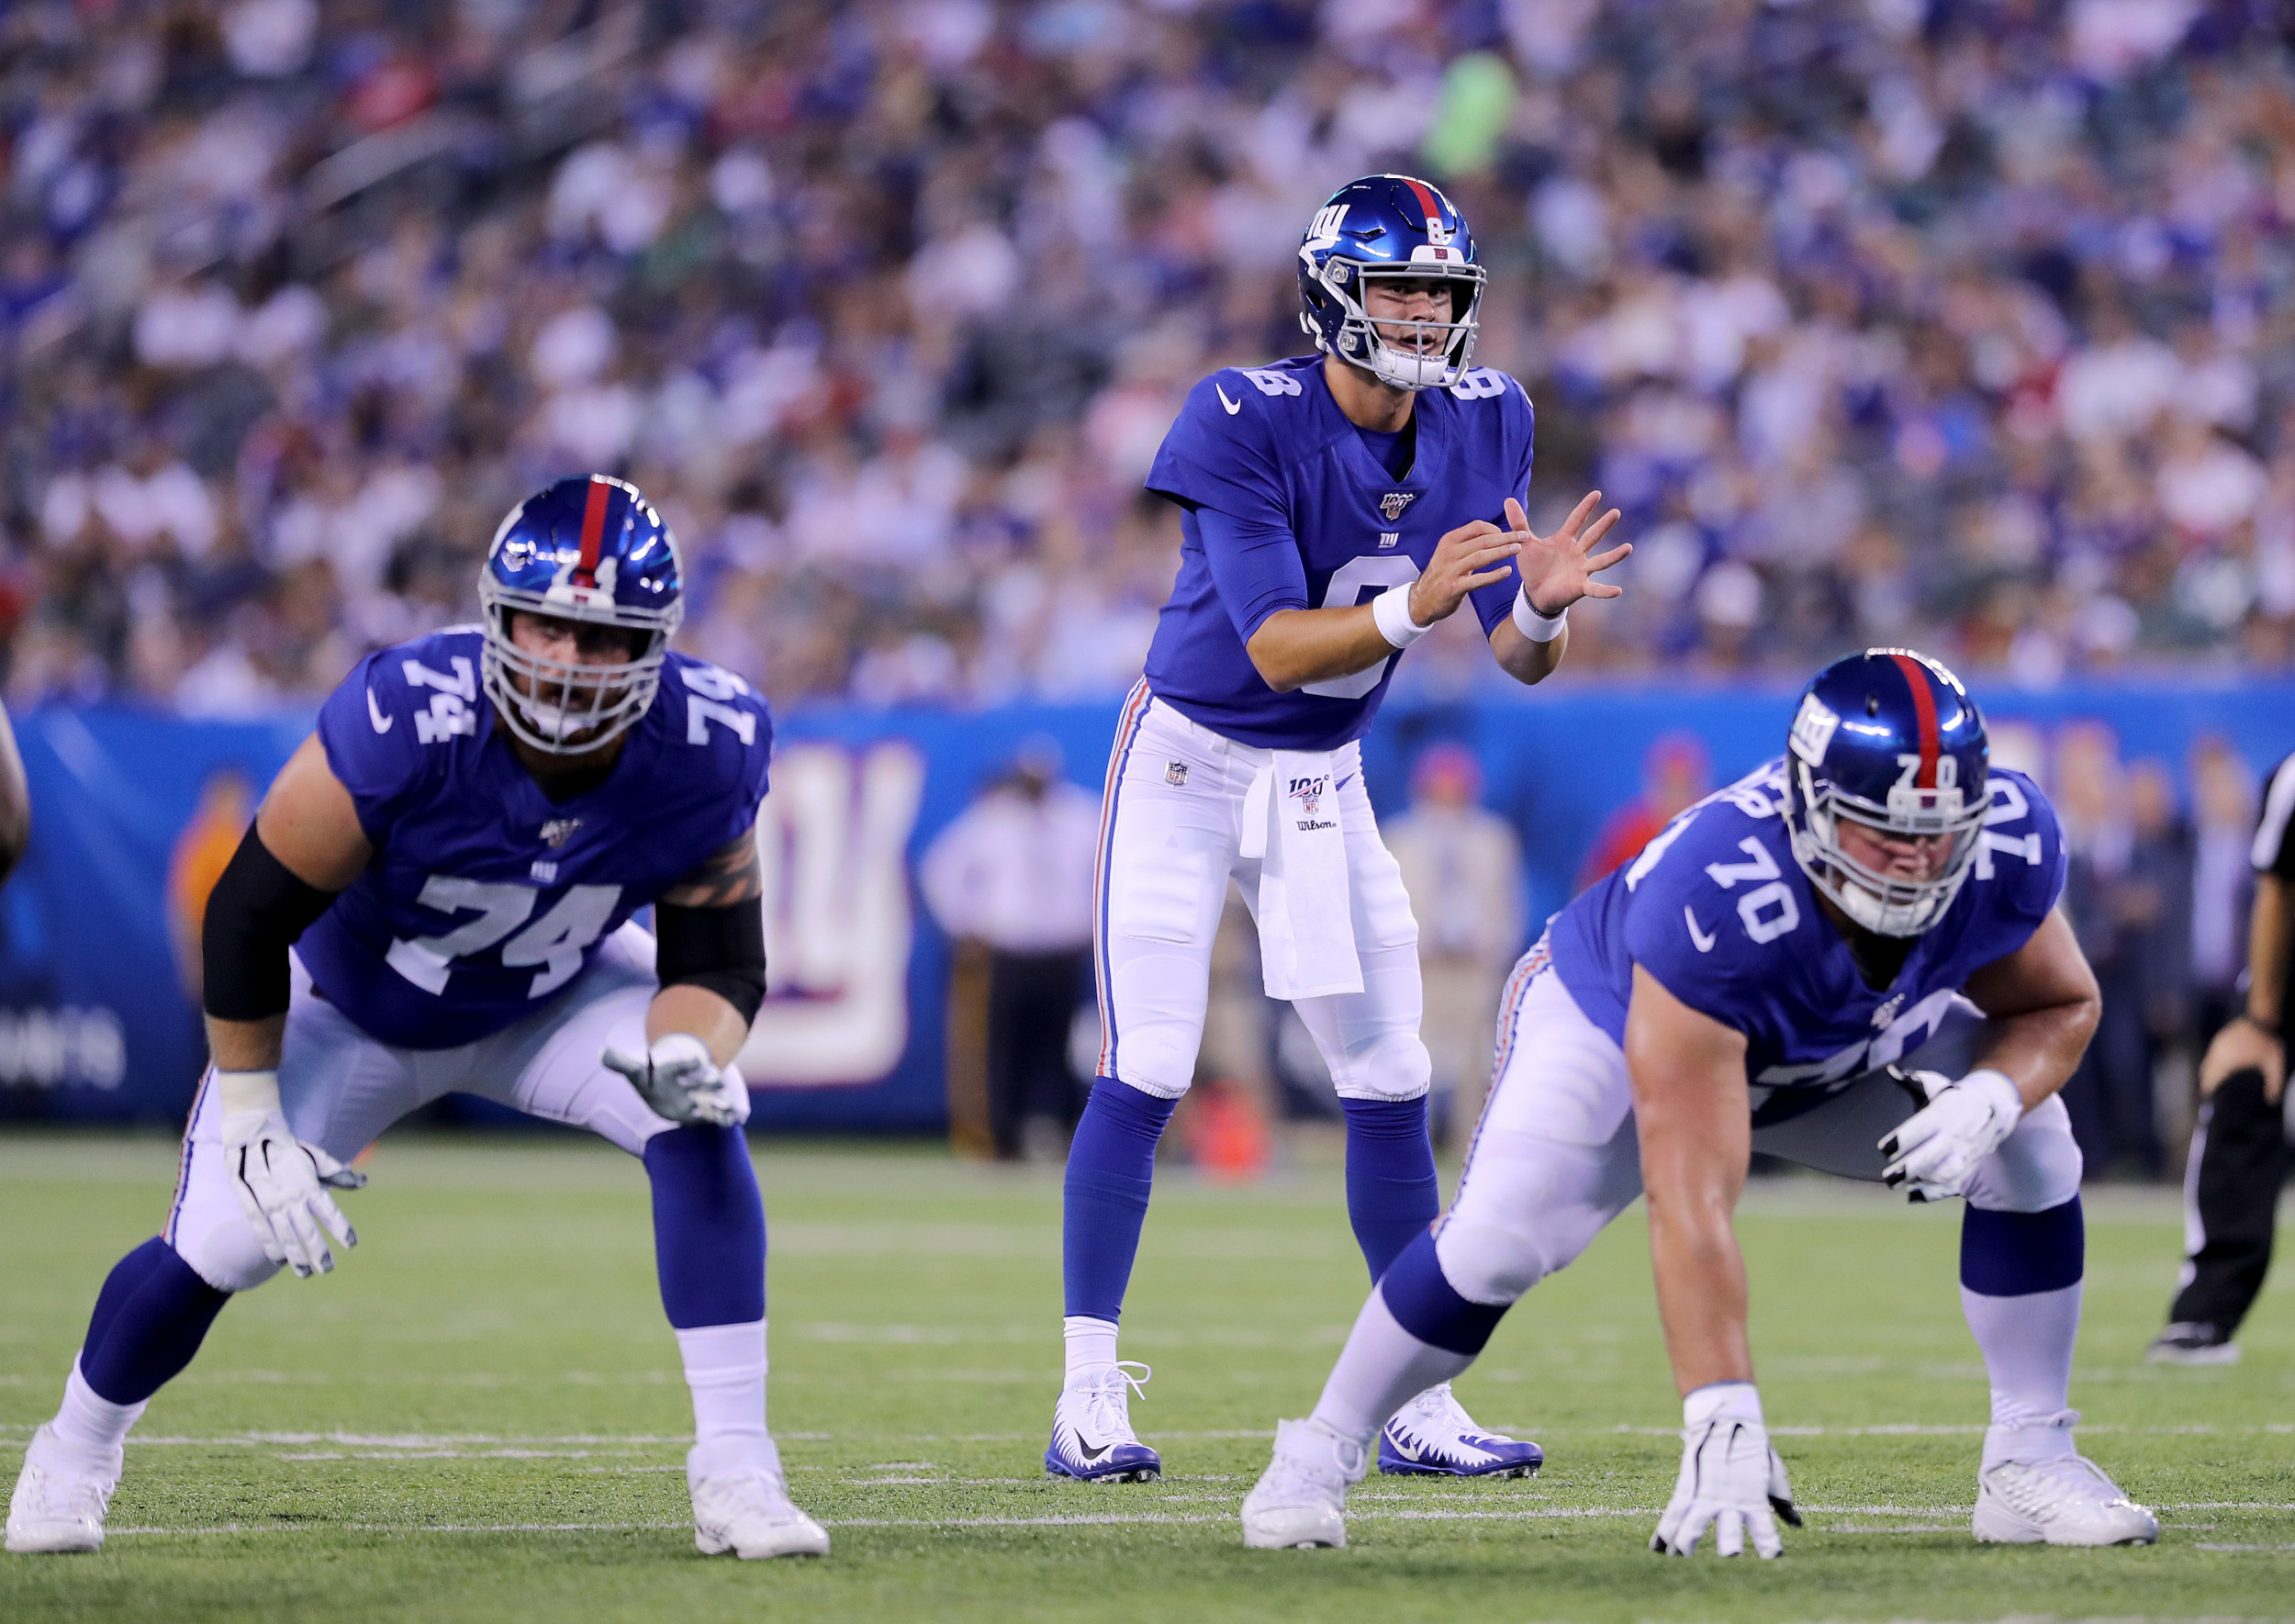 bebfafc2 NFL Preseason: Where to Watch Chicago Bears vs. New York Giants, TV ...